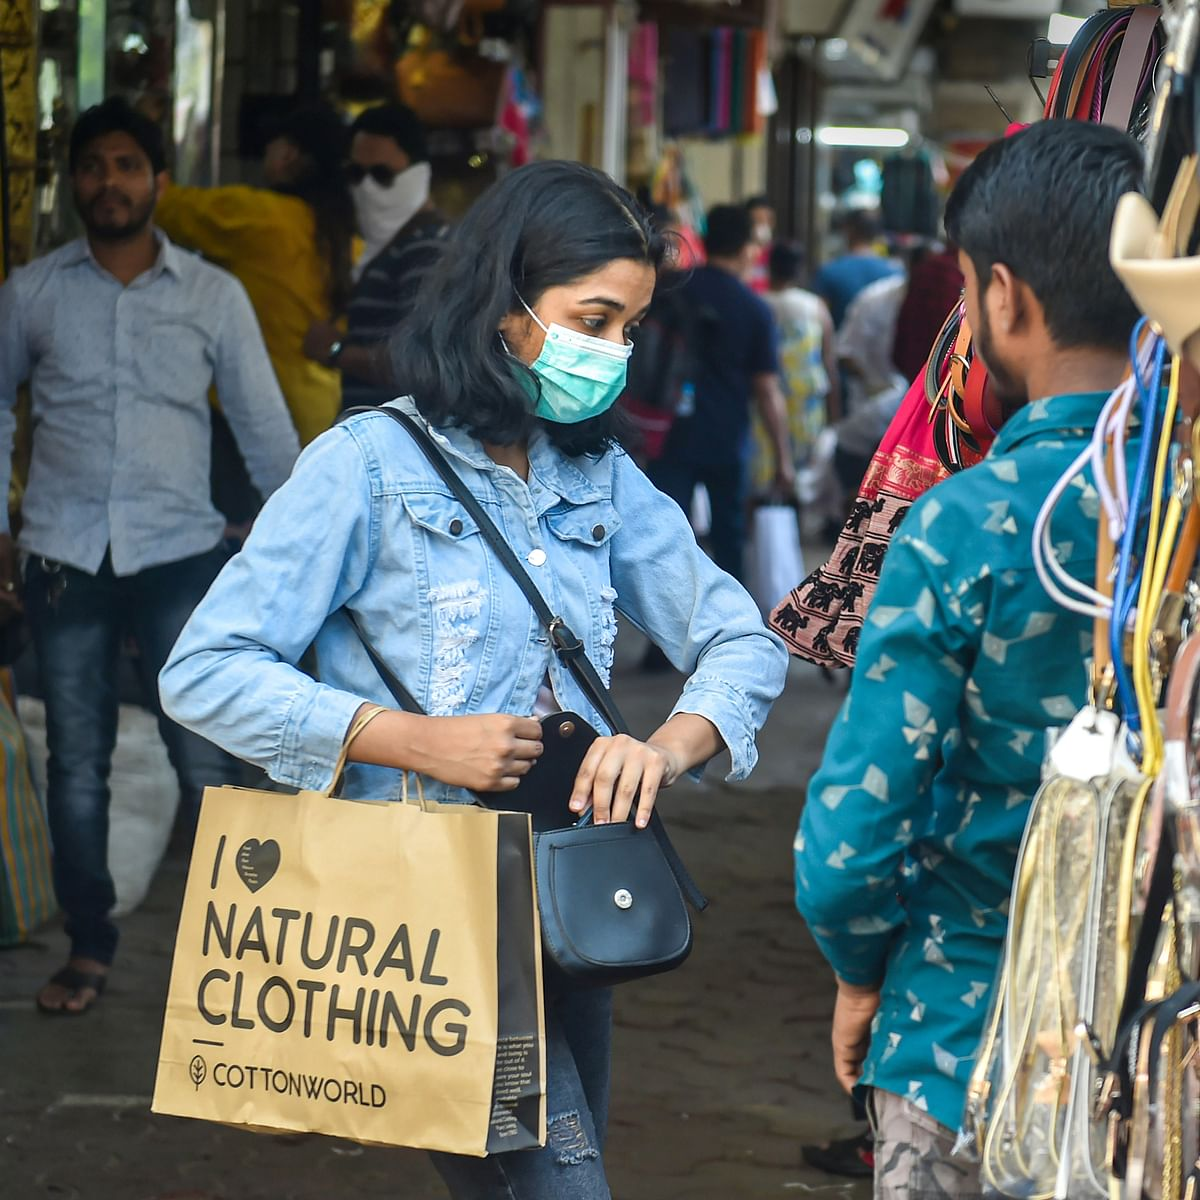 Coronavirus in Mumbai: BMC collects Rs 4.8 crore in fines from people not wearing mask